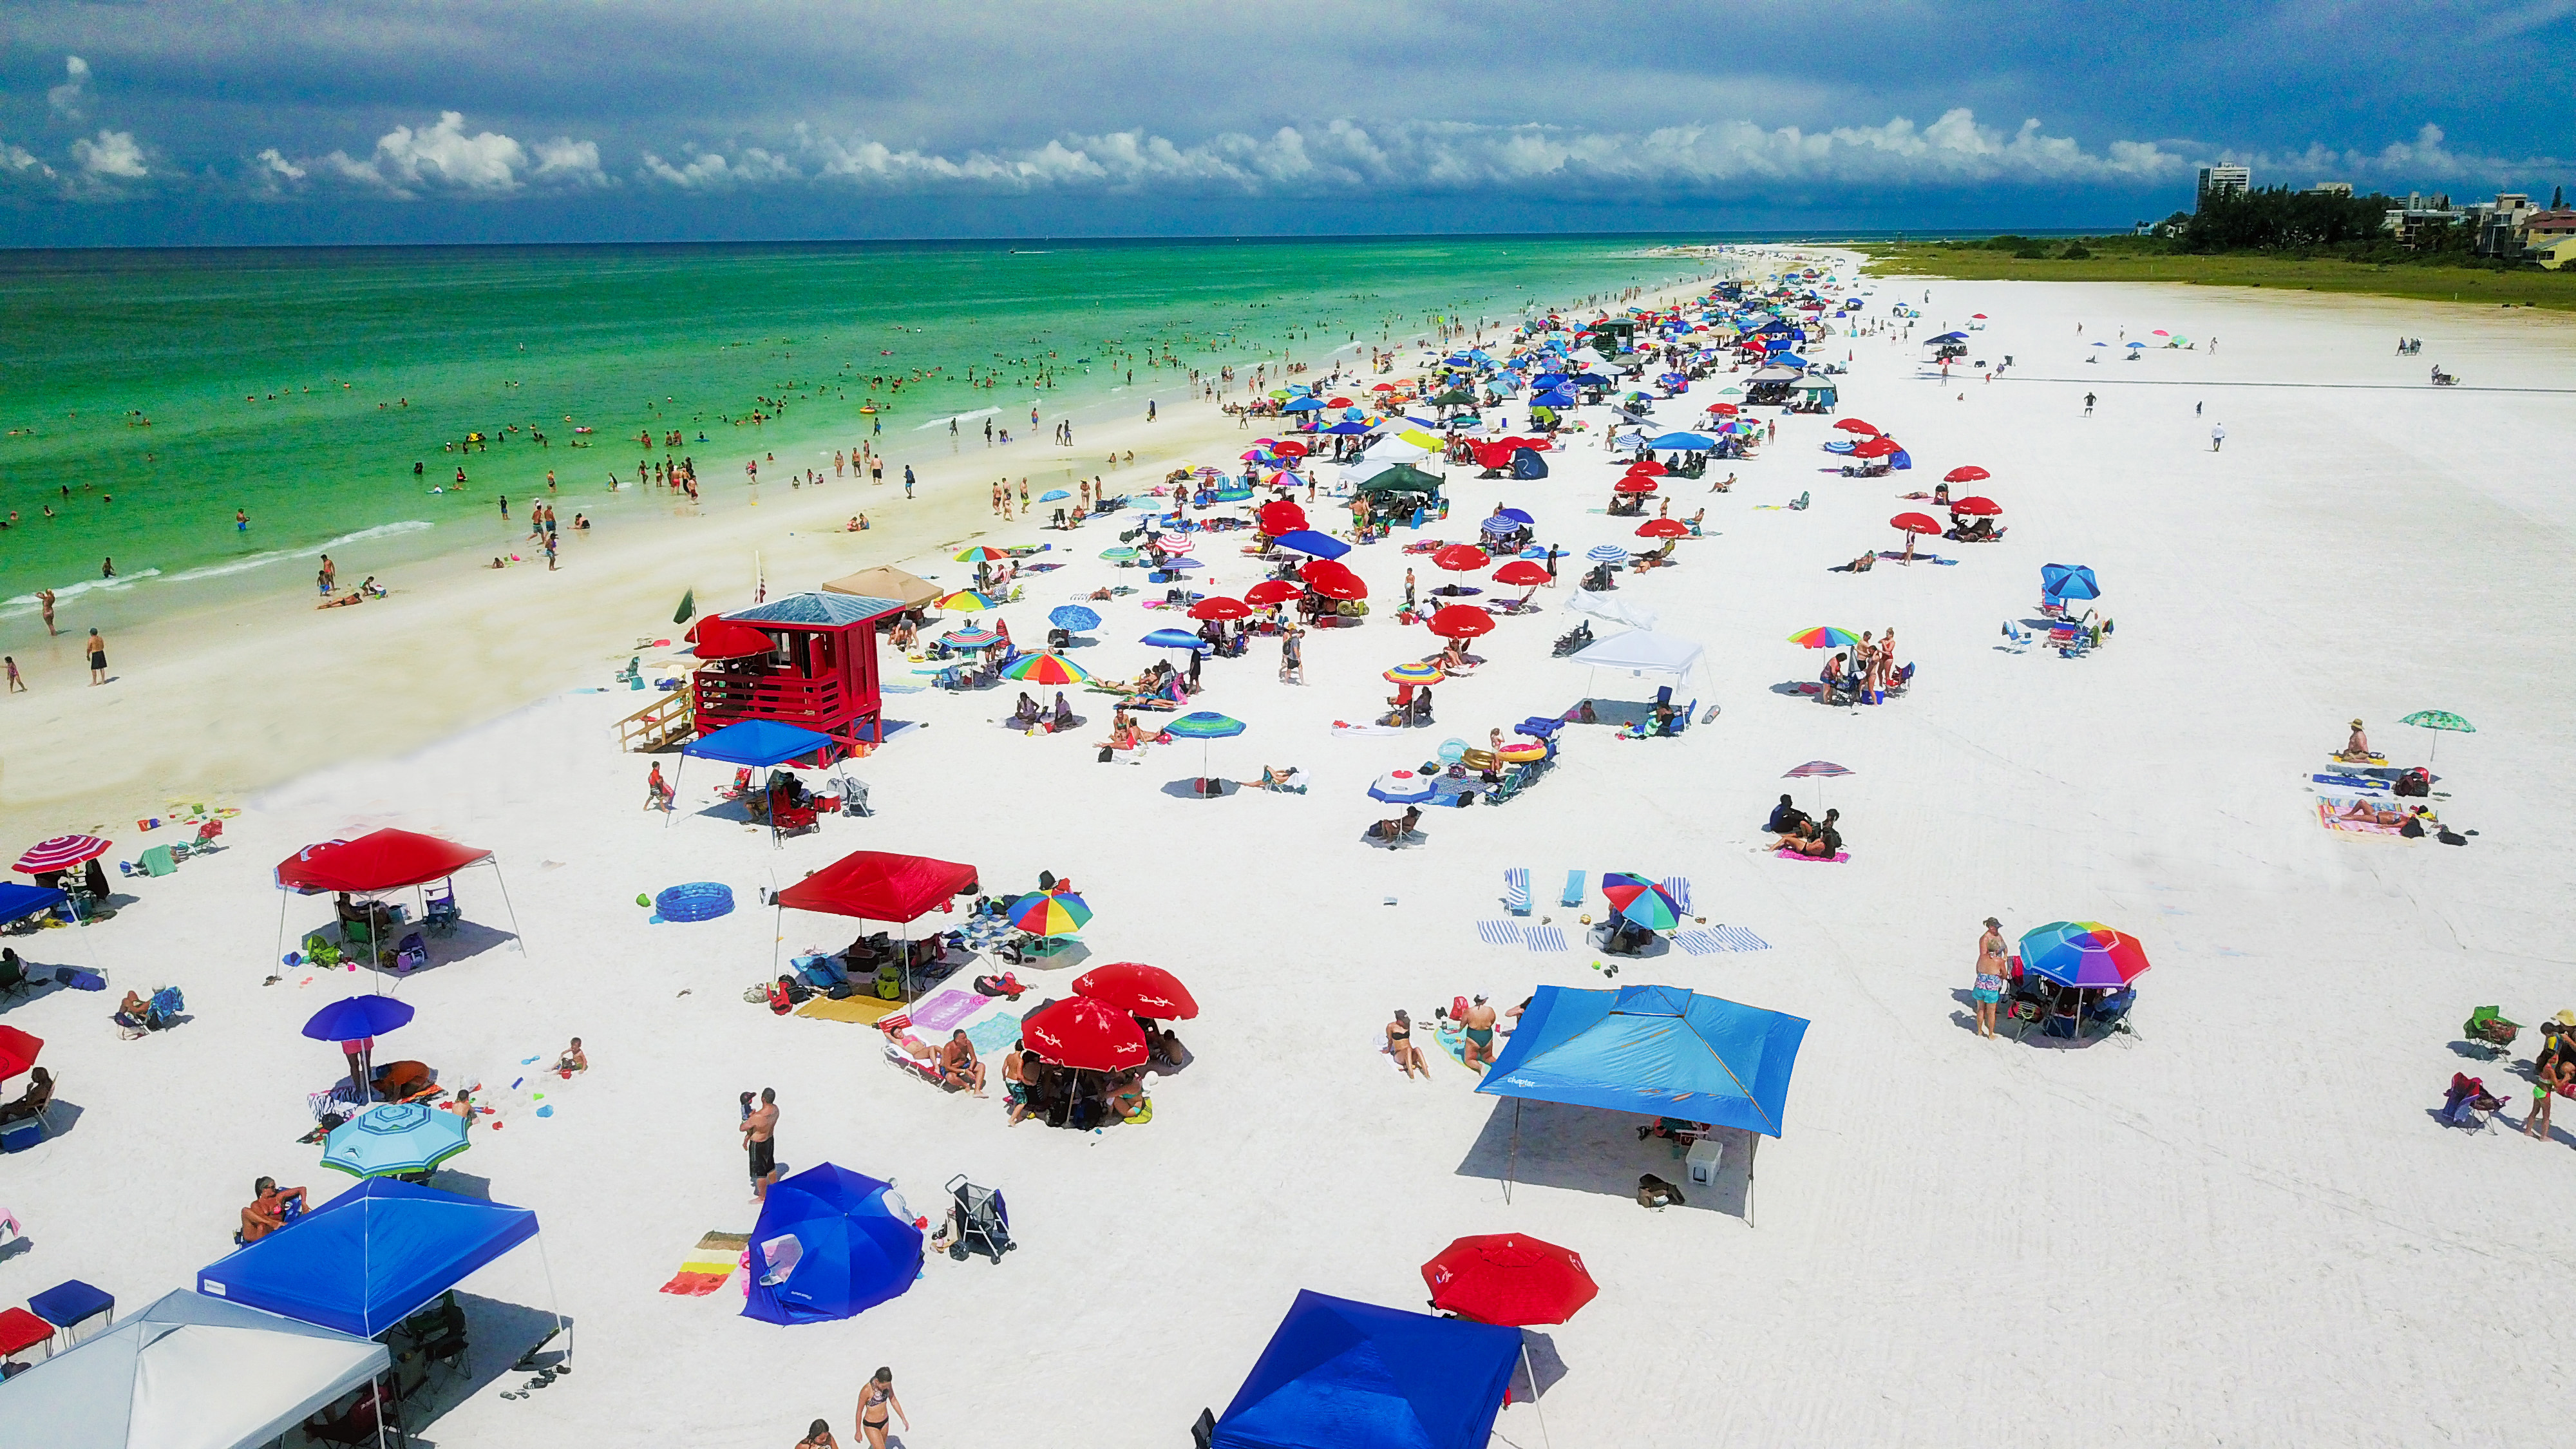 Drone of Siesta Key beach in Sarasota, Florida.